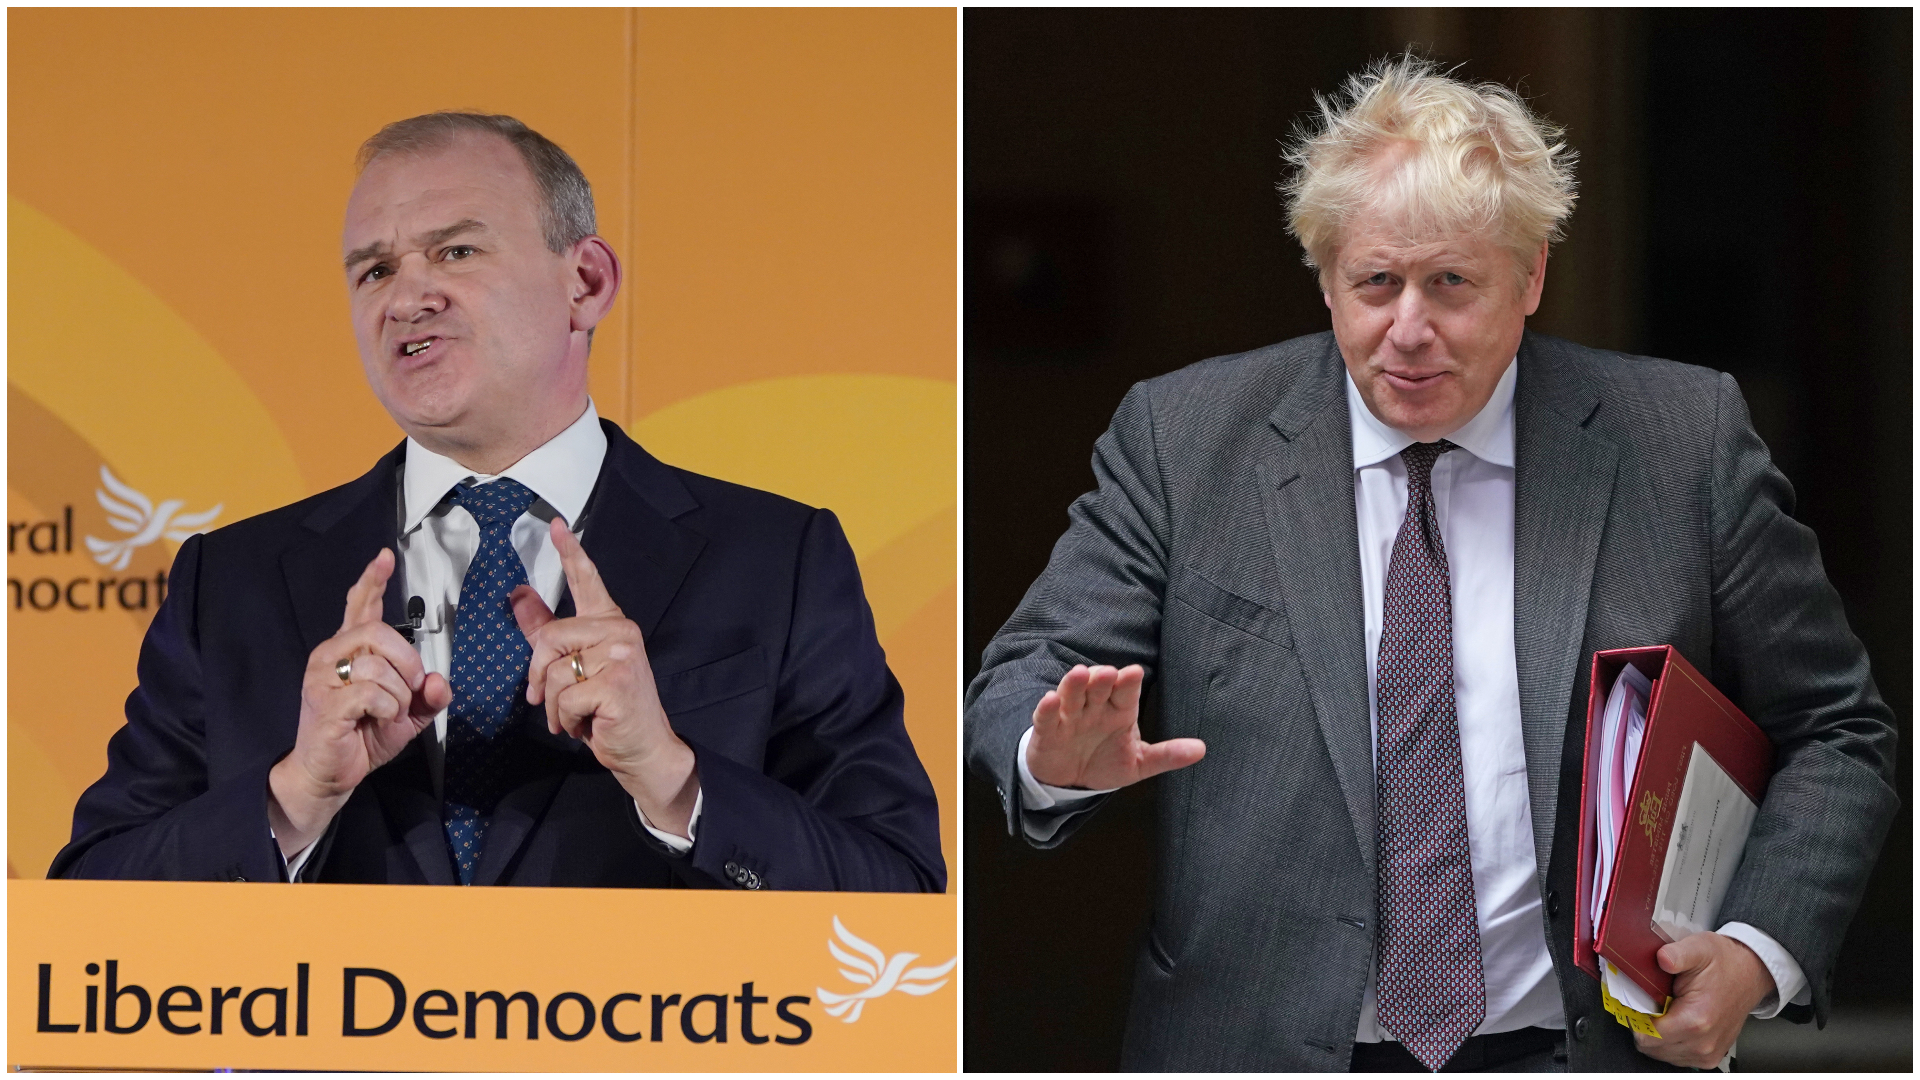 Lib Dems leader Ed Davey suggests party could cut Tory majority in next election | ITV News